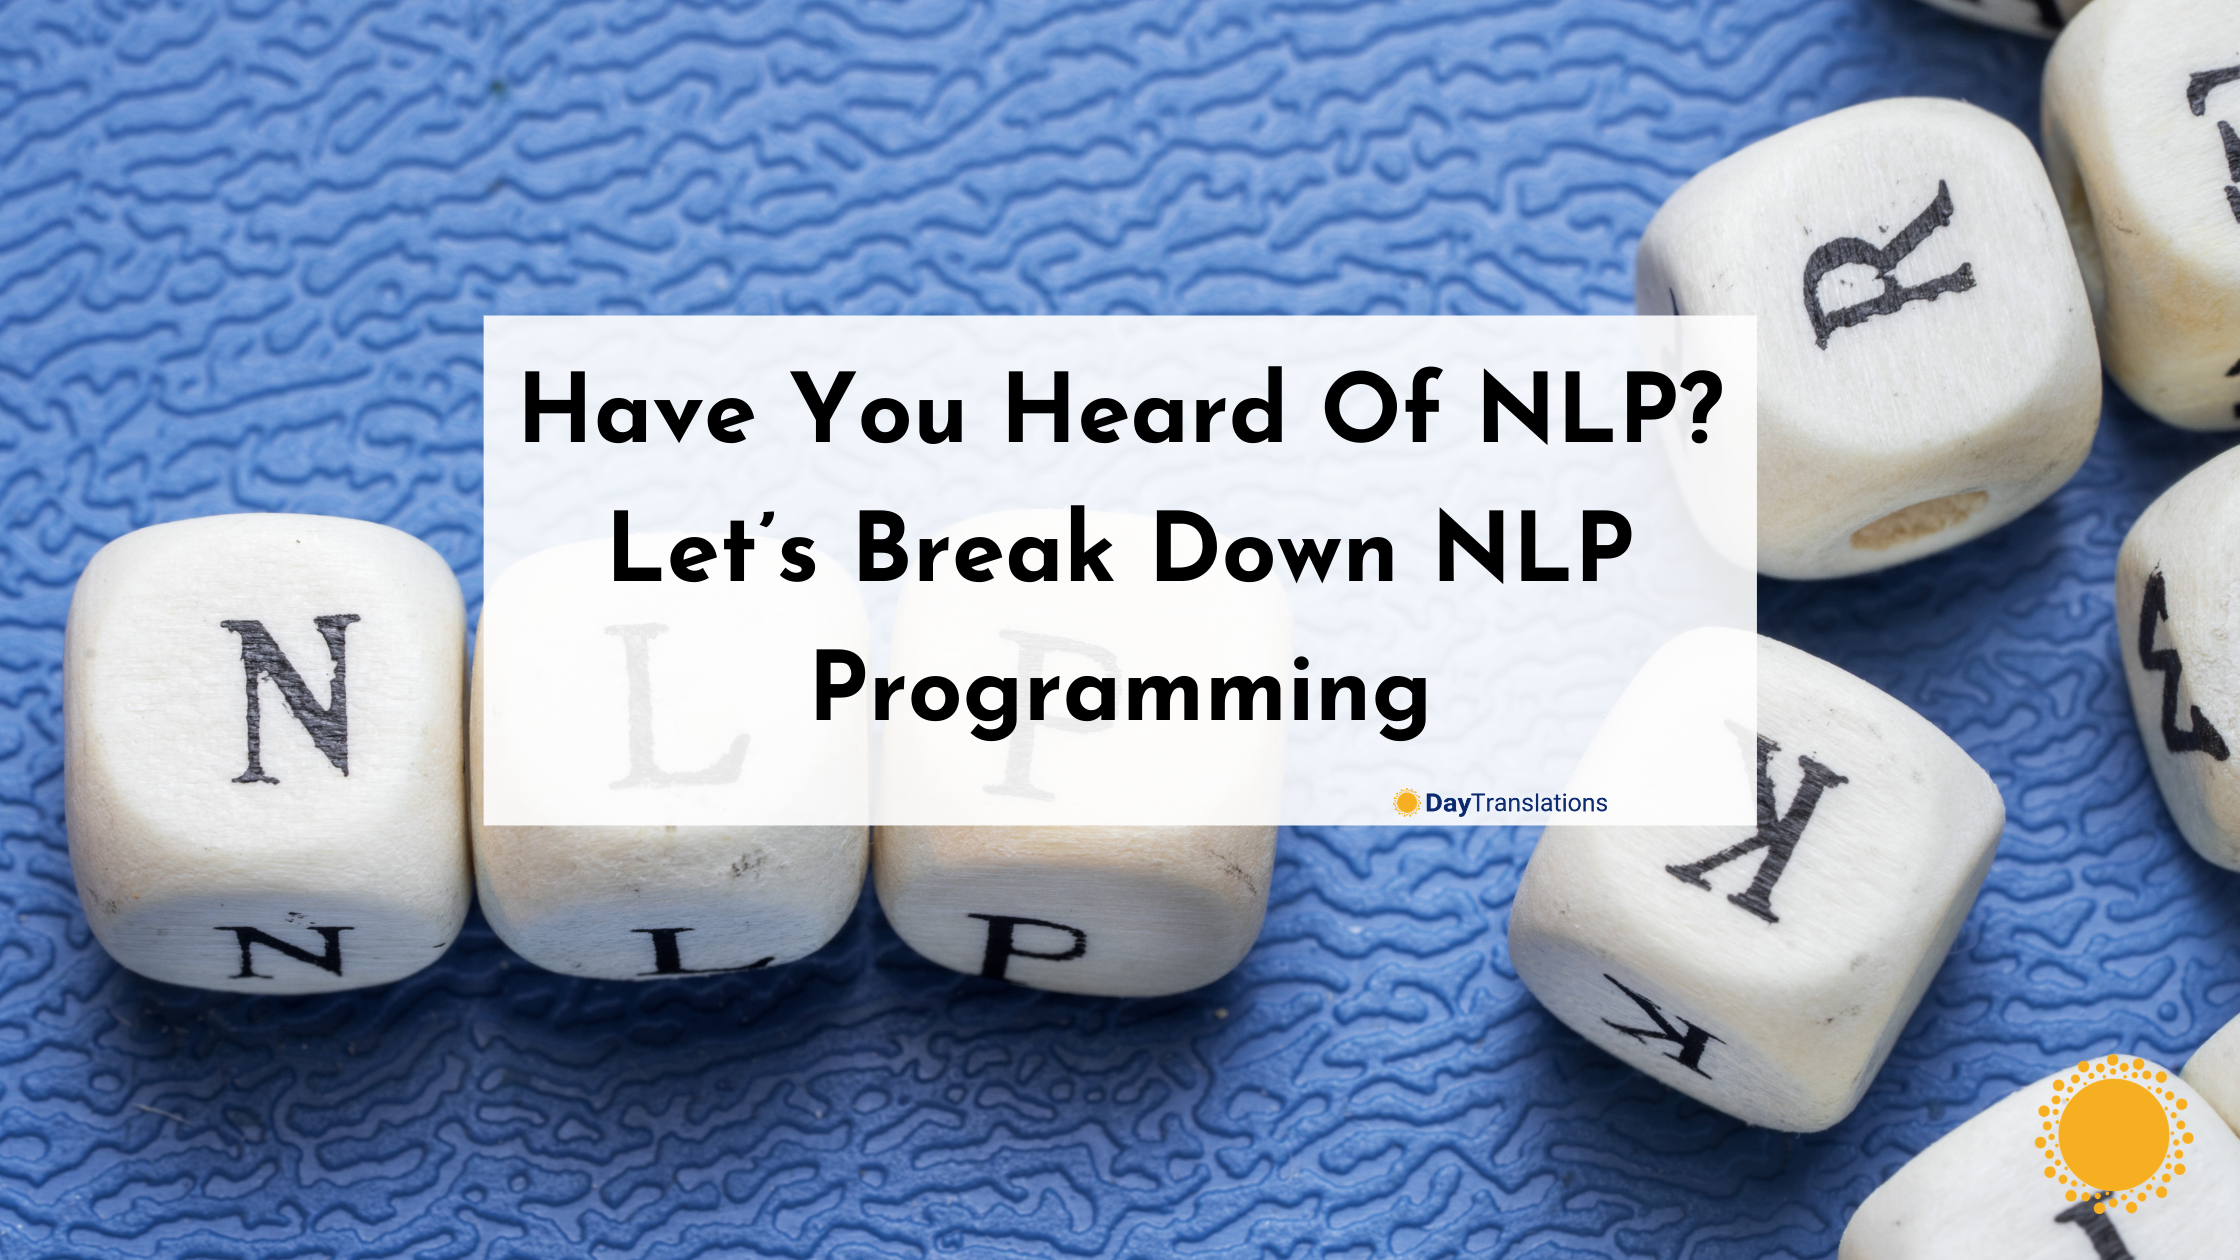 Have You Heard Of NLP? Let's Break Down Neuro-Linguistic Programming